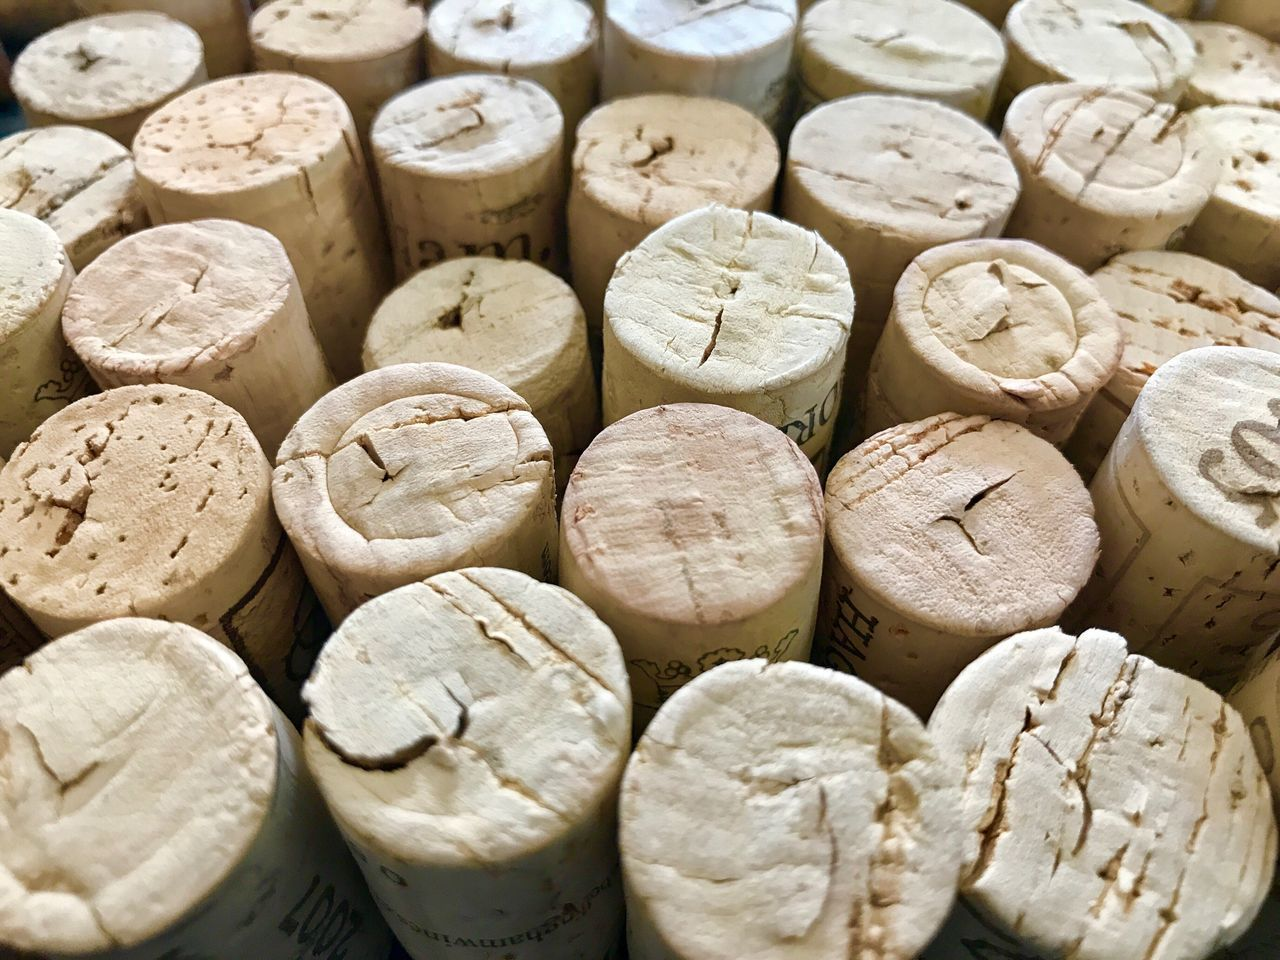 Wine Cork Cork - Stopper Full Frame Backgrounds Food And Drink Textured  No People Close-up Indoors  Day